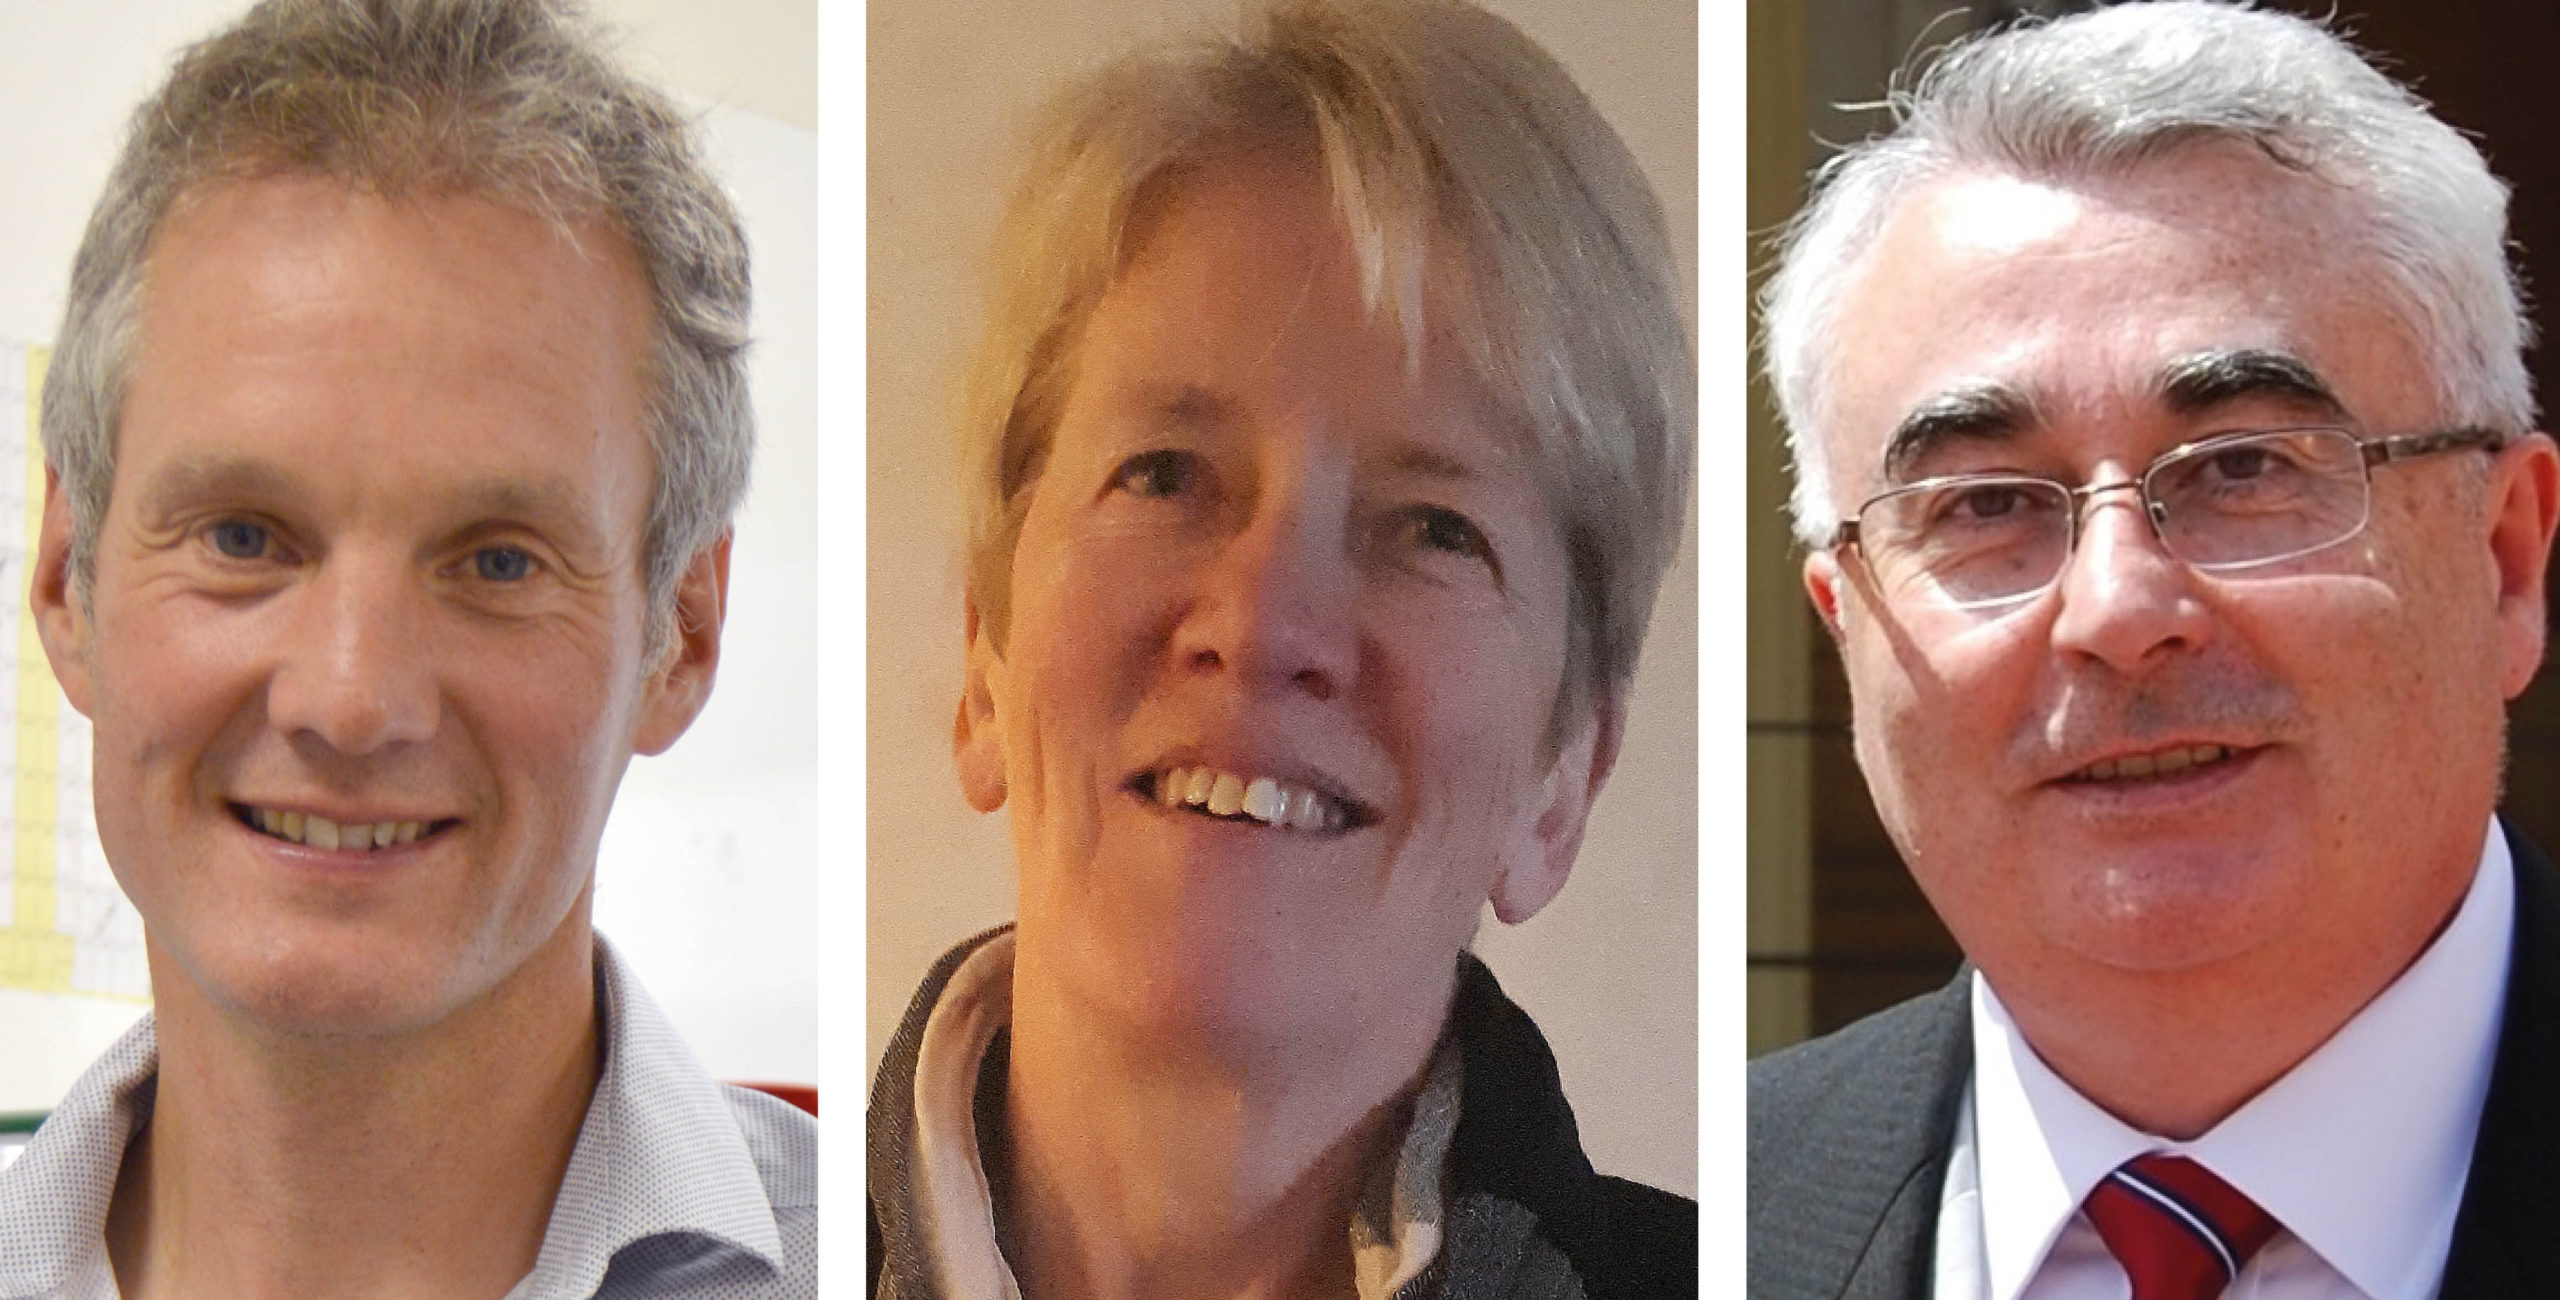 Dr Tom Lewis, Dr Marion Wood & Dr Martin Myers, GIRFT's three clinical leads for pathology